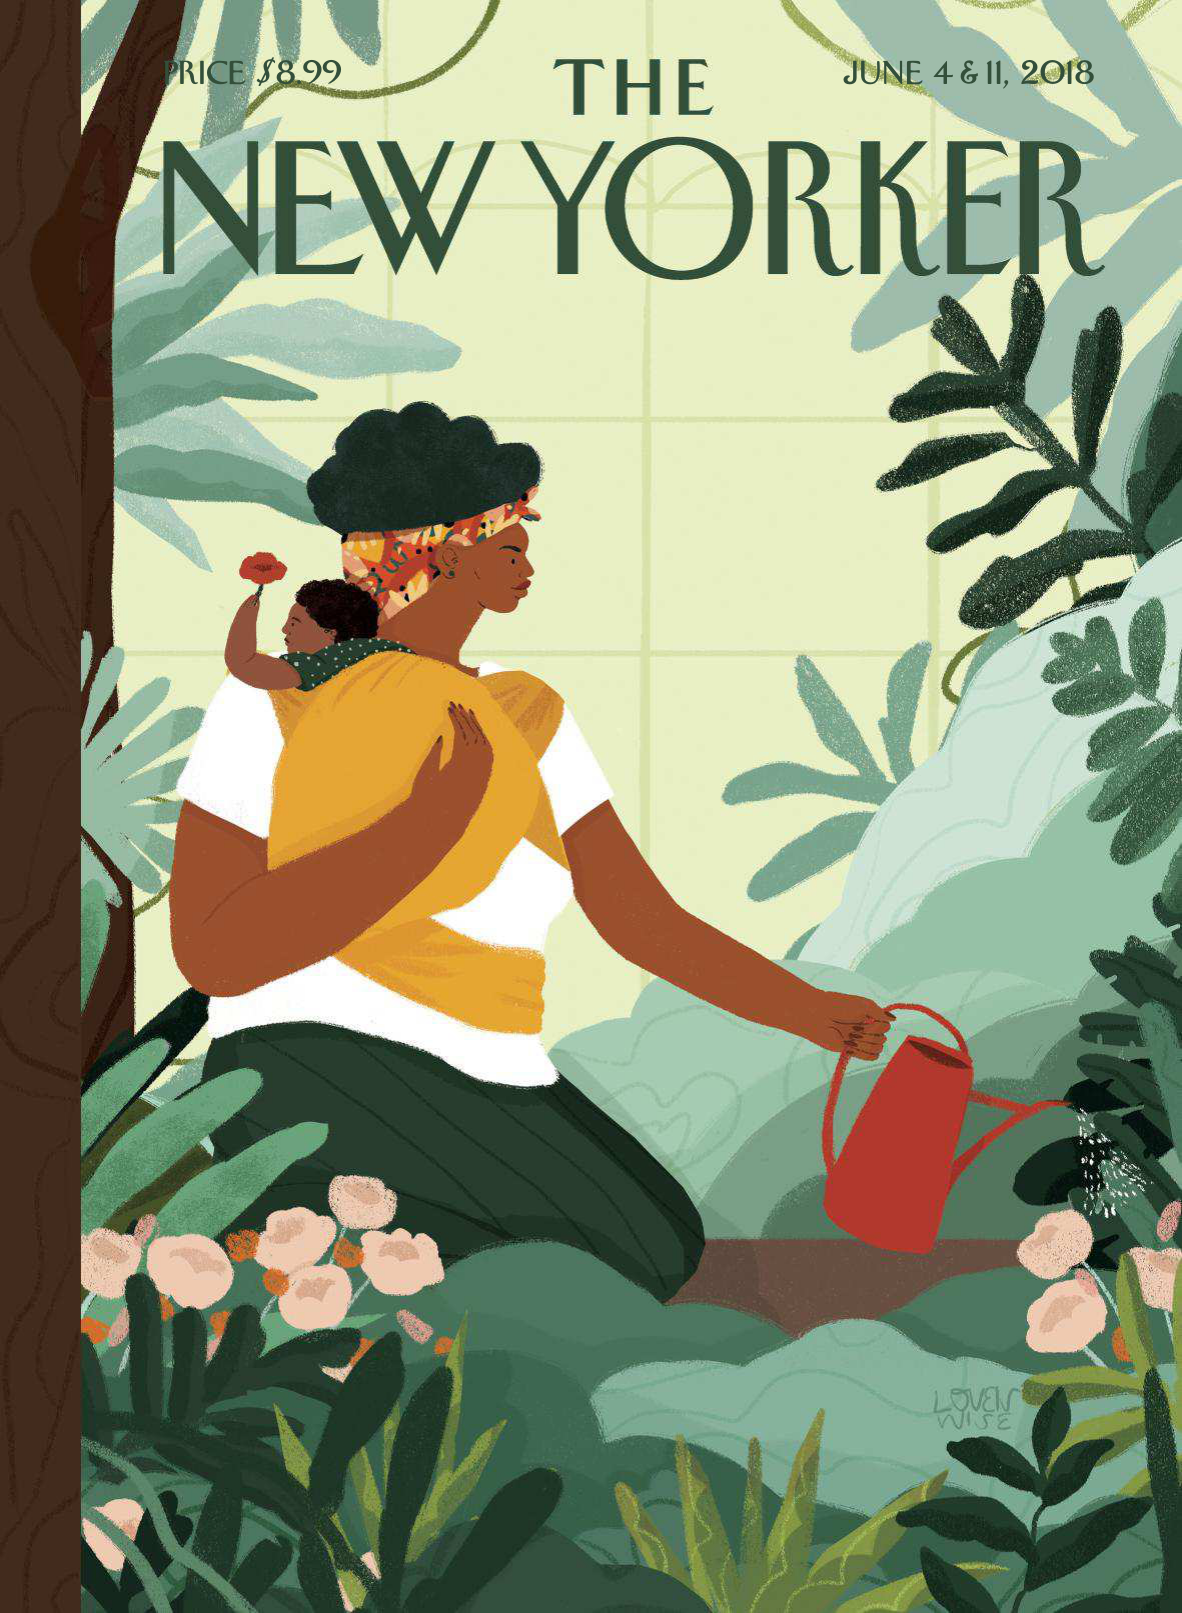 2018-06-04 The New Yorker 780293f3dfec